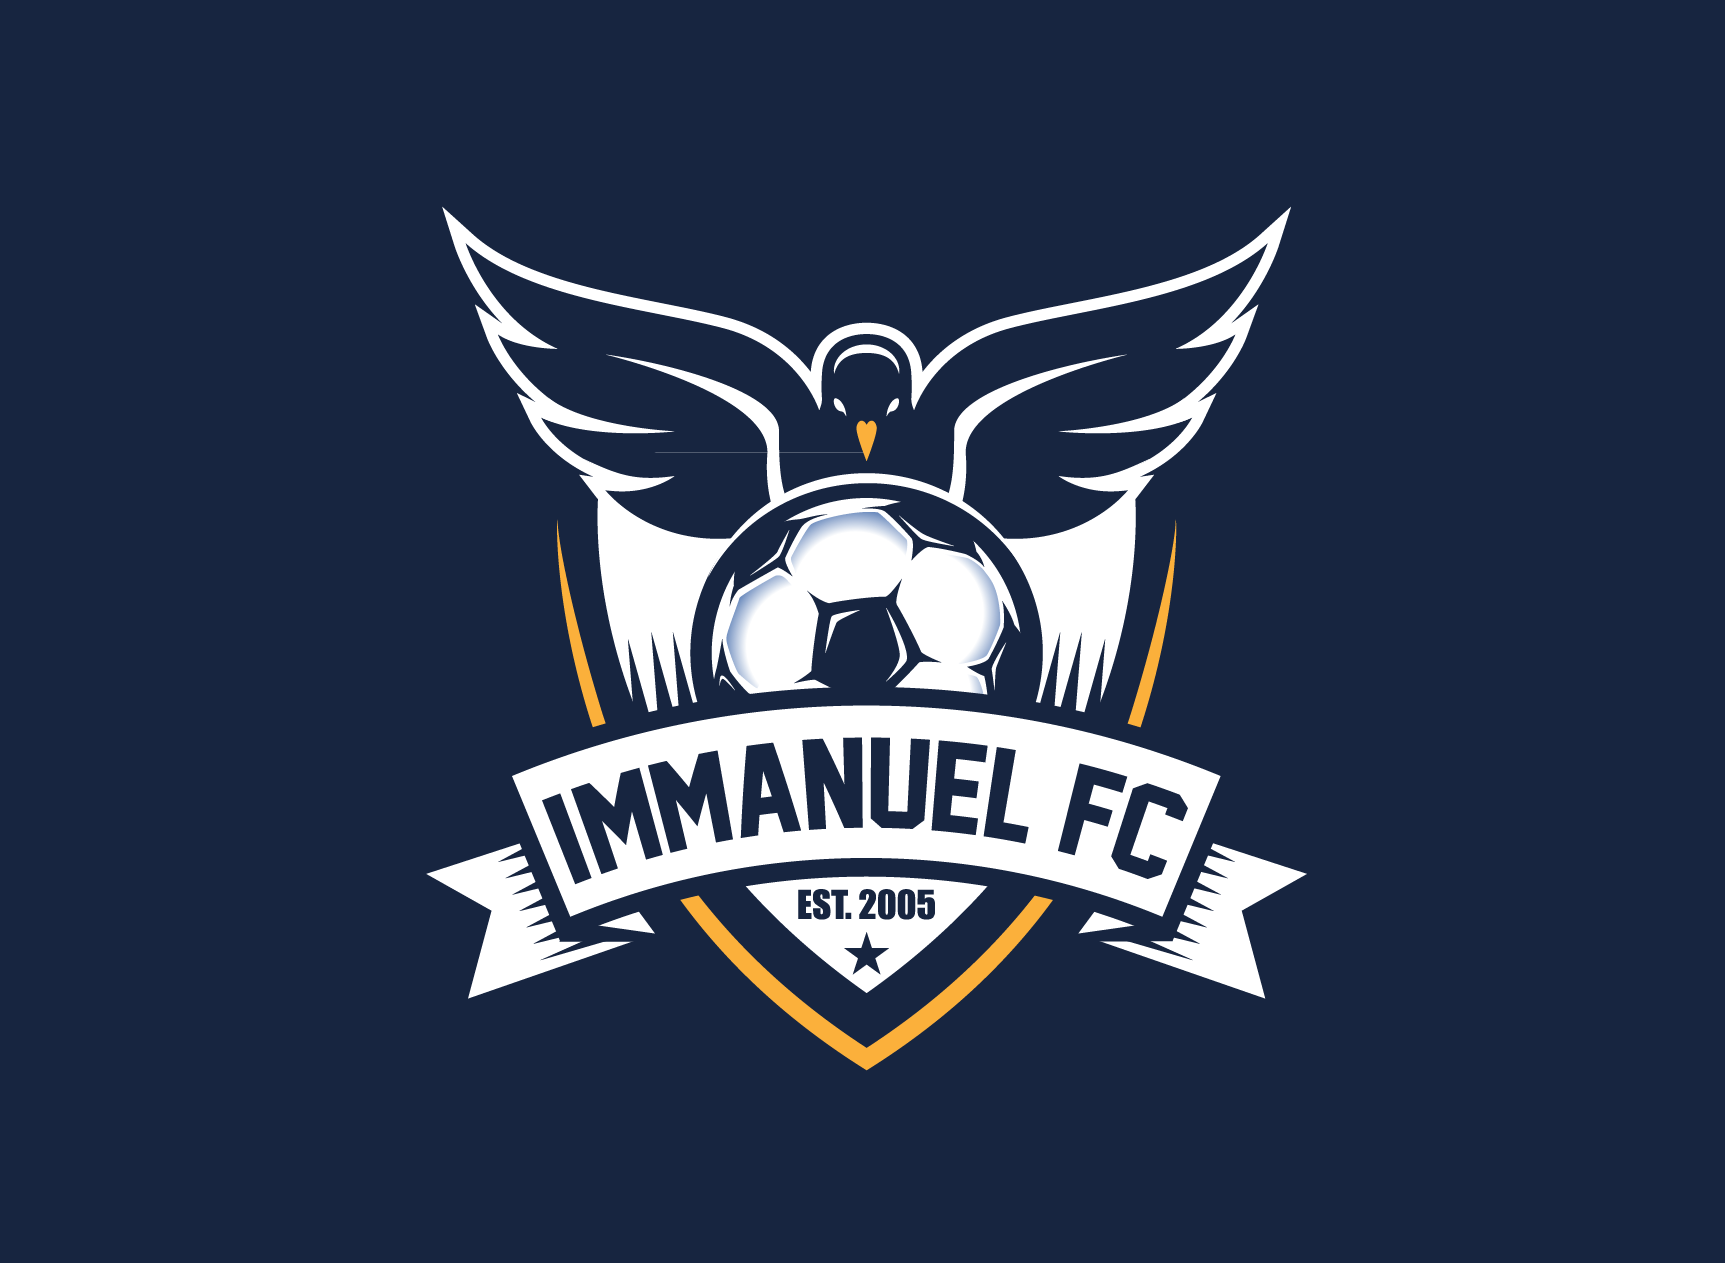 Help Immanuel College Old Scholars Soccer Club Inc with a new logo